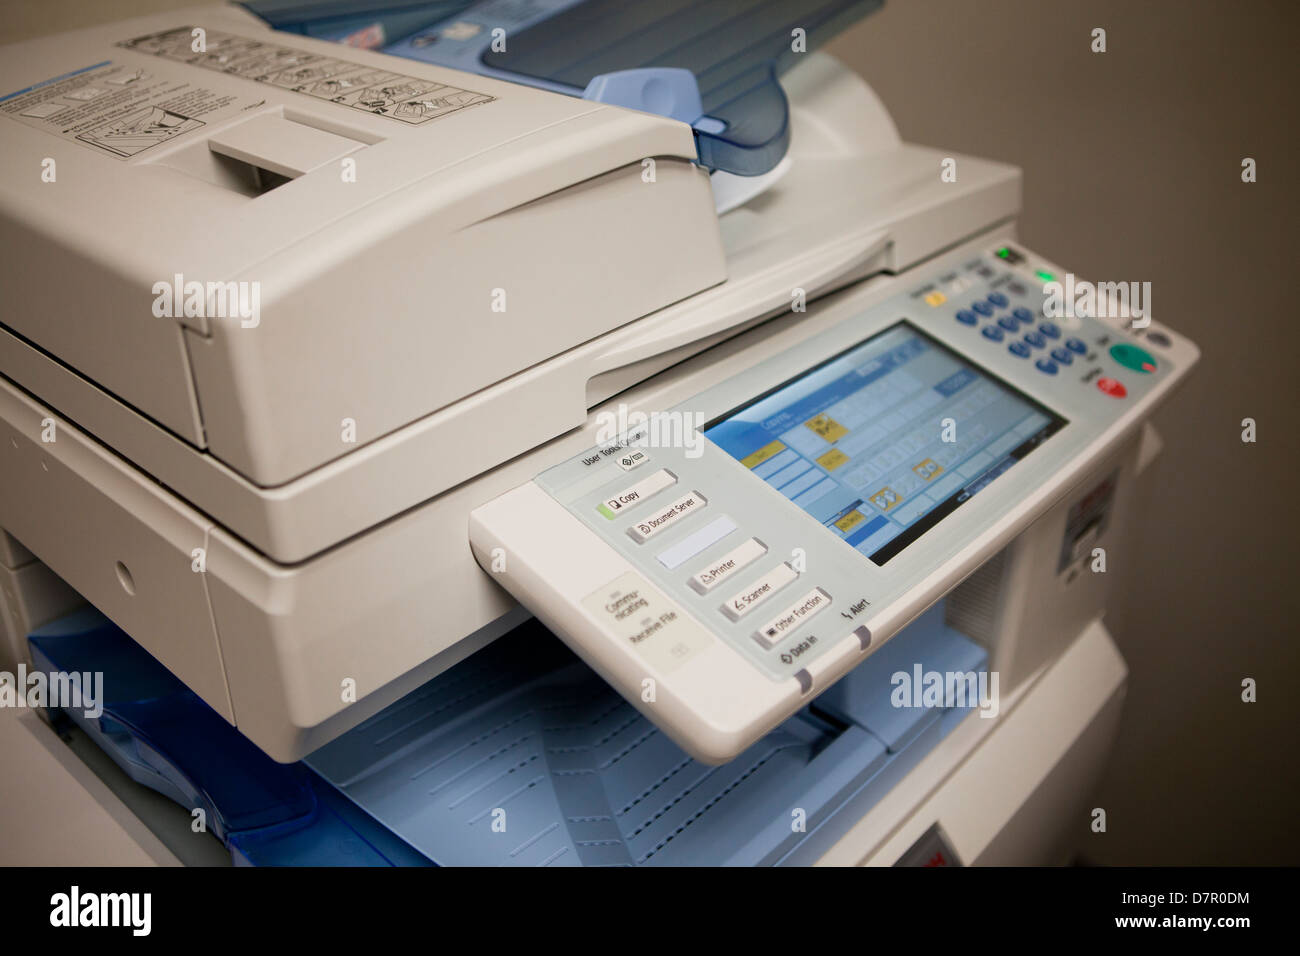 Office copying machine Photo Stock